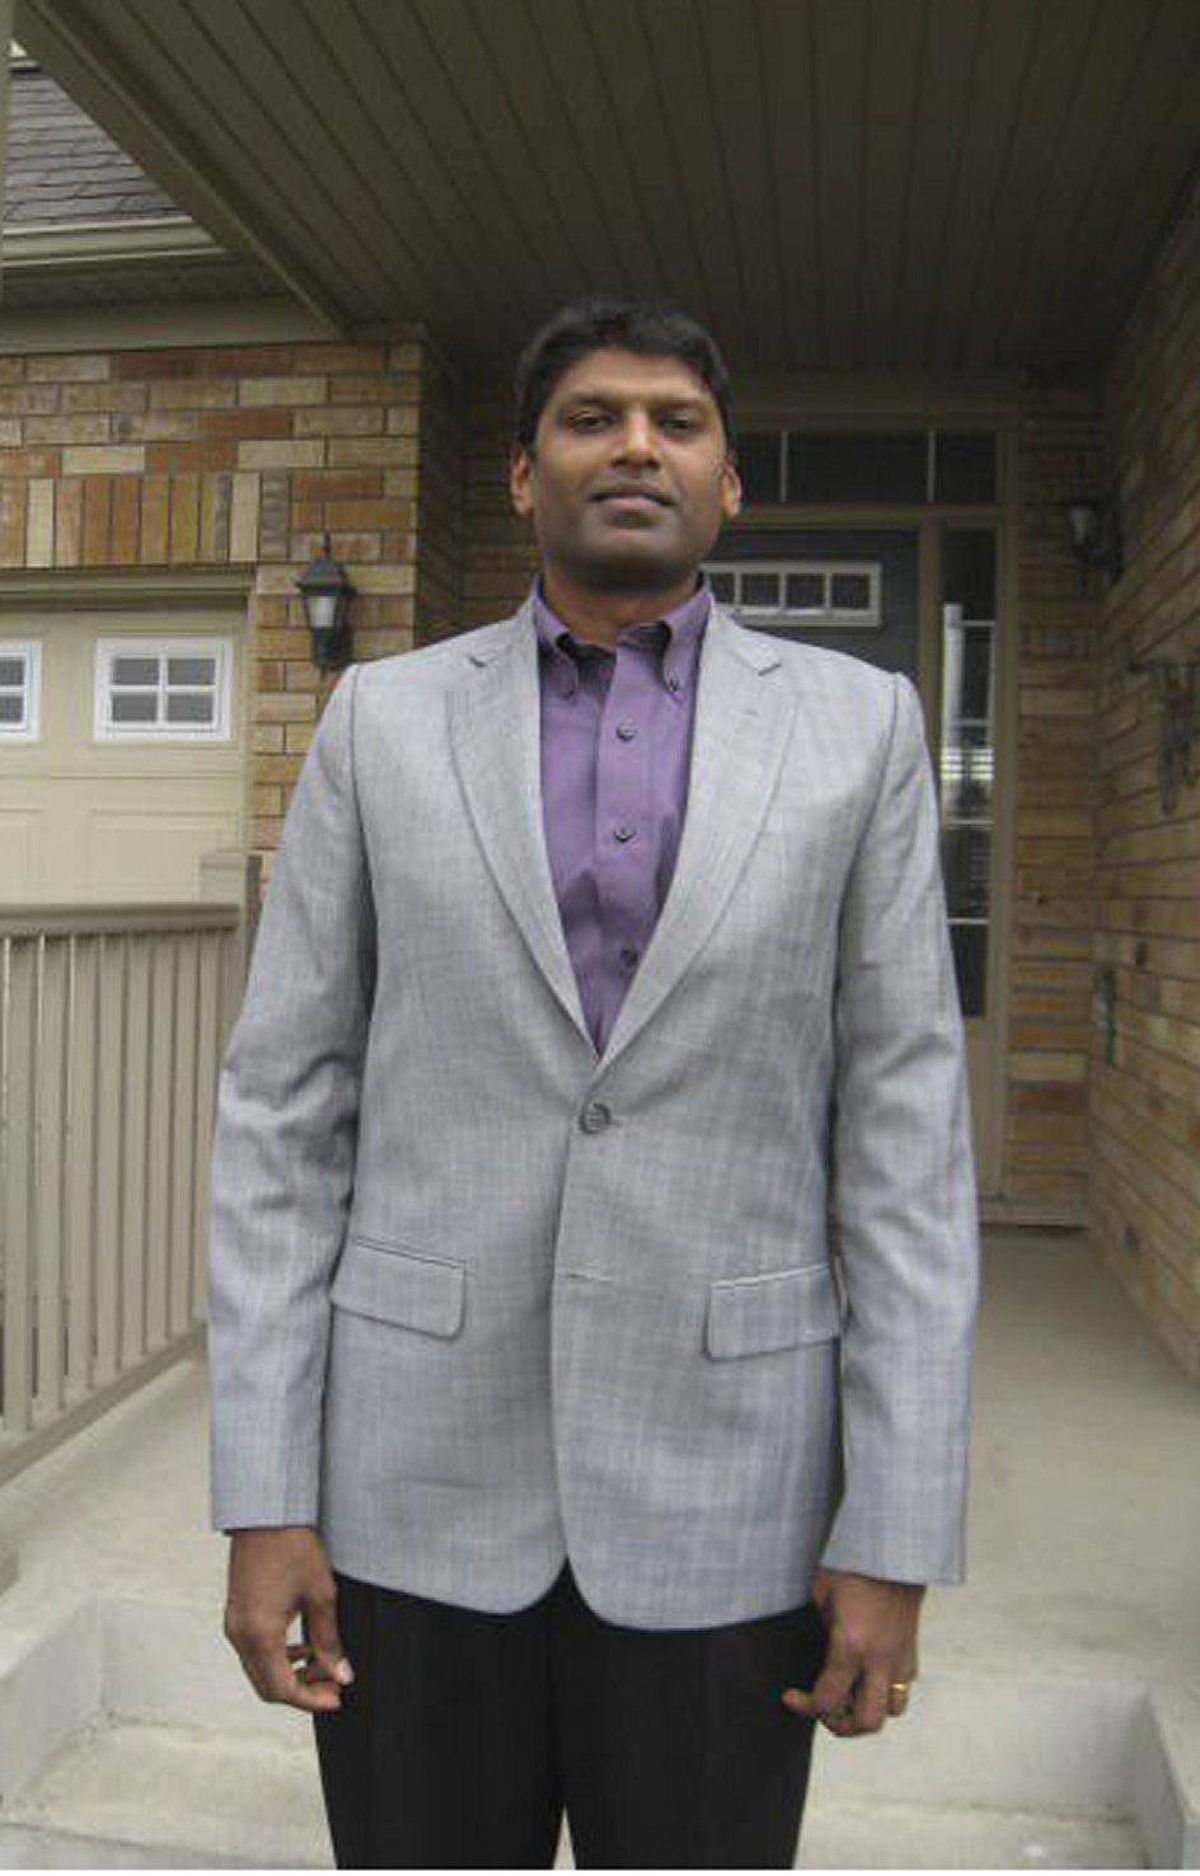 "FREDRIC SURESH Lives in Milton, Ont. Emigrated from India in 1996 HIS STORY: ""I am an engineer by training but I had great difficulty in landing a job. I decided to change fields and went to York University to become a teacher. I now teach high school math and I absolutely enjoy my job."""